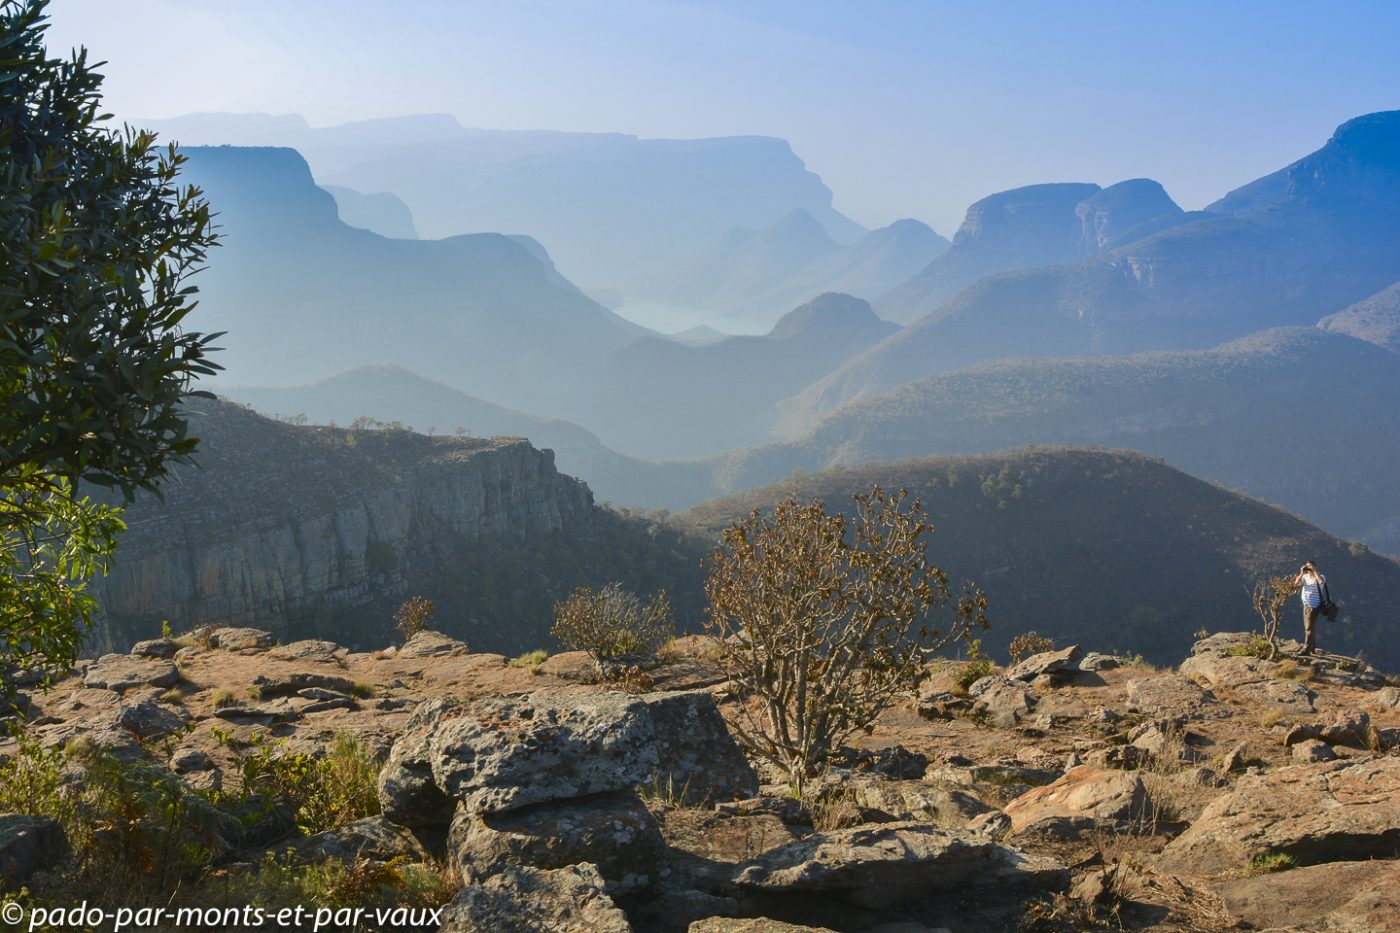 Blyde river canyon - Lowveld view